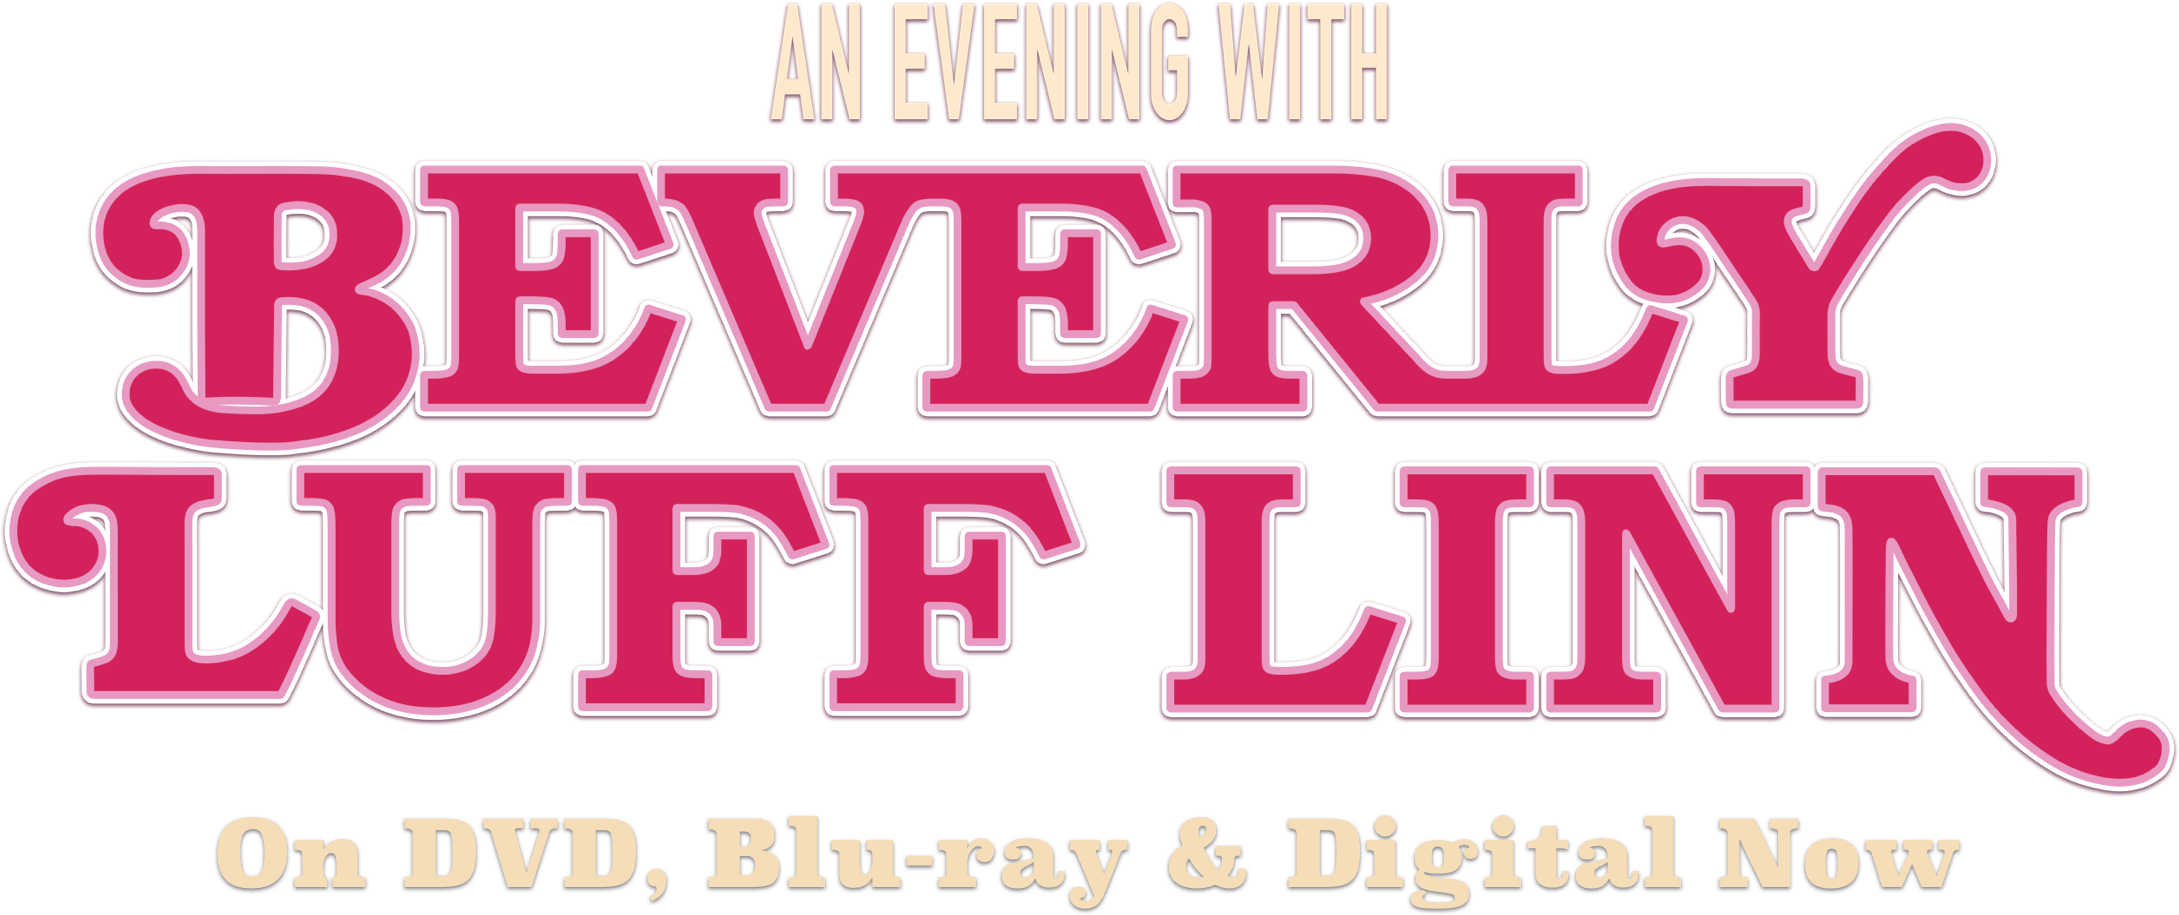 An Evening With Beverly Luff Linn : Synopsis | Picturehouse Entertainment